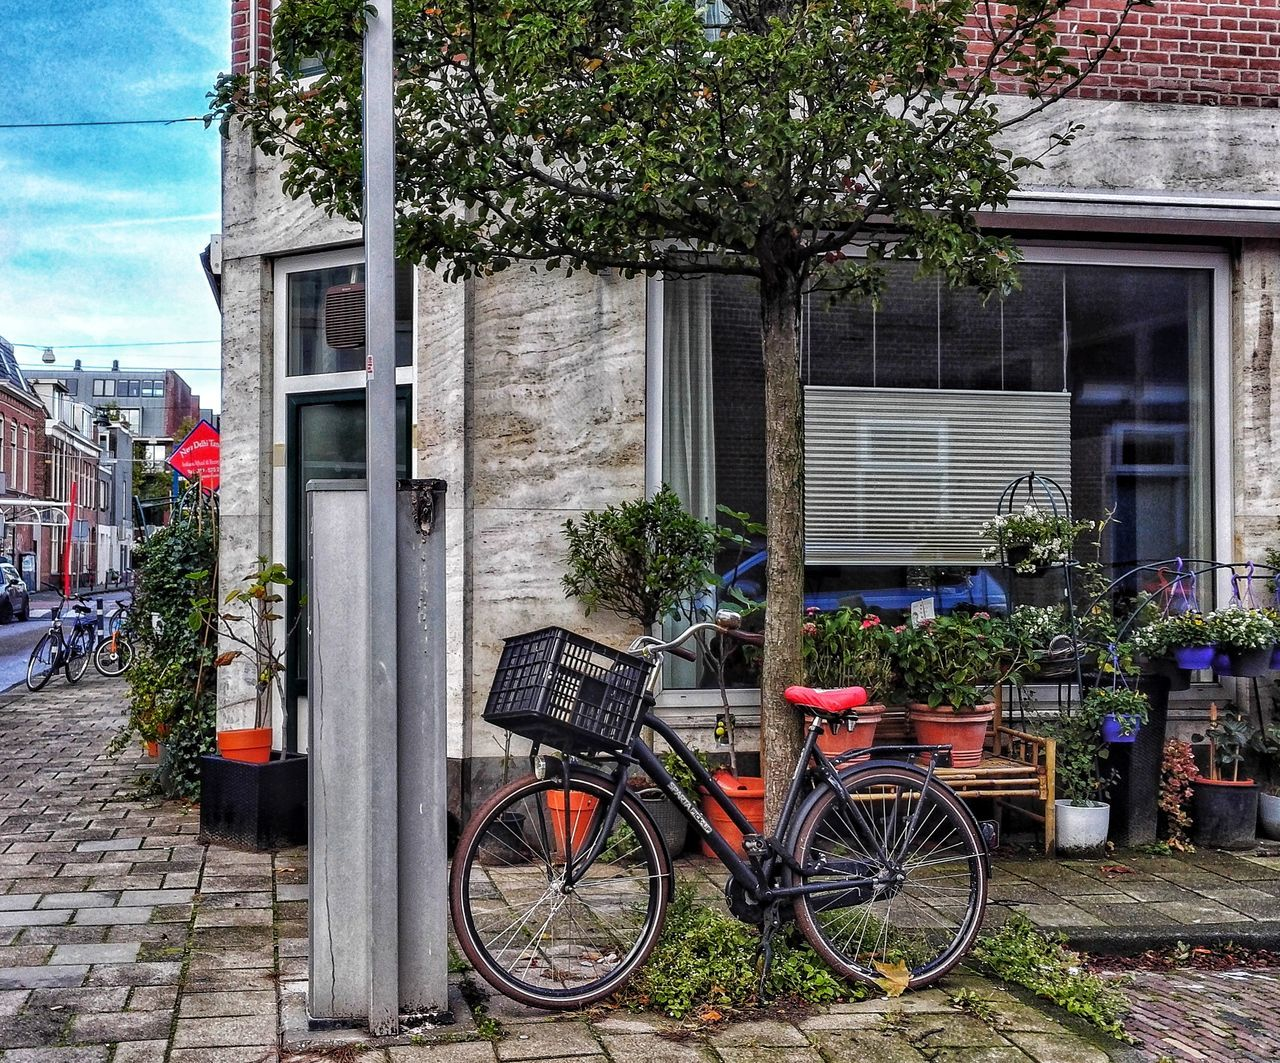 bicycle, building exterior, architecture, built structure, transportation, mode of transport, outdoors, day, land vehicle, stationary, no people, tree, plant, city, flower, nature